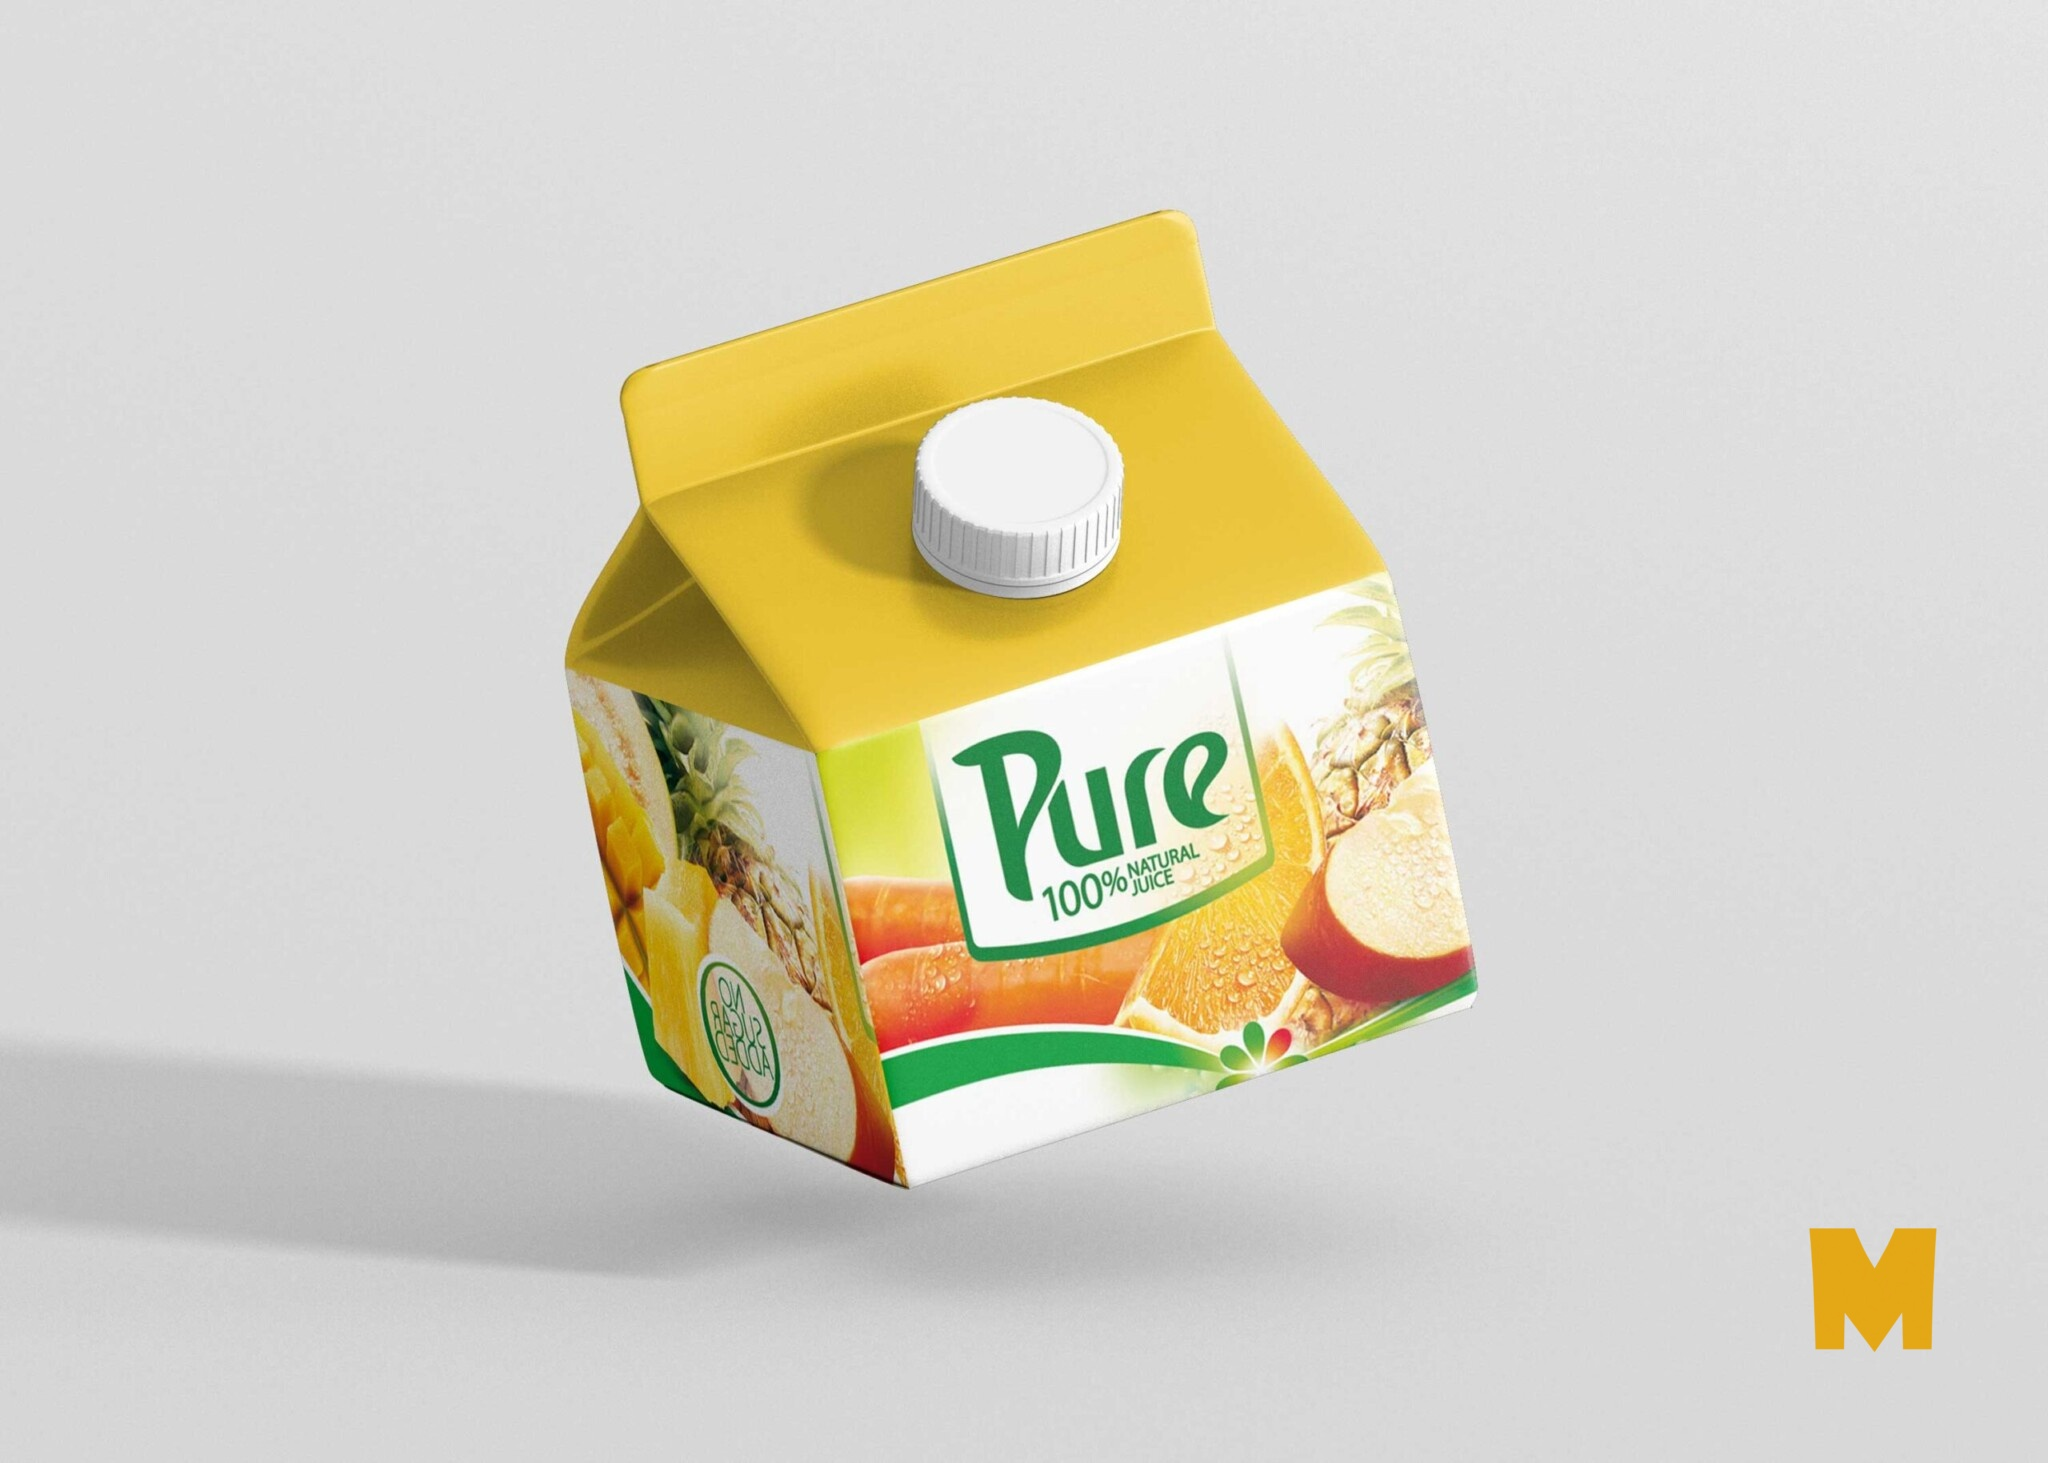 Mockup Curd Package Presentation